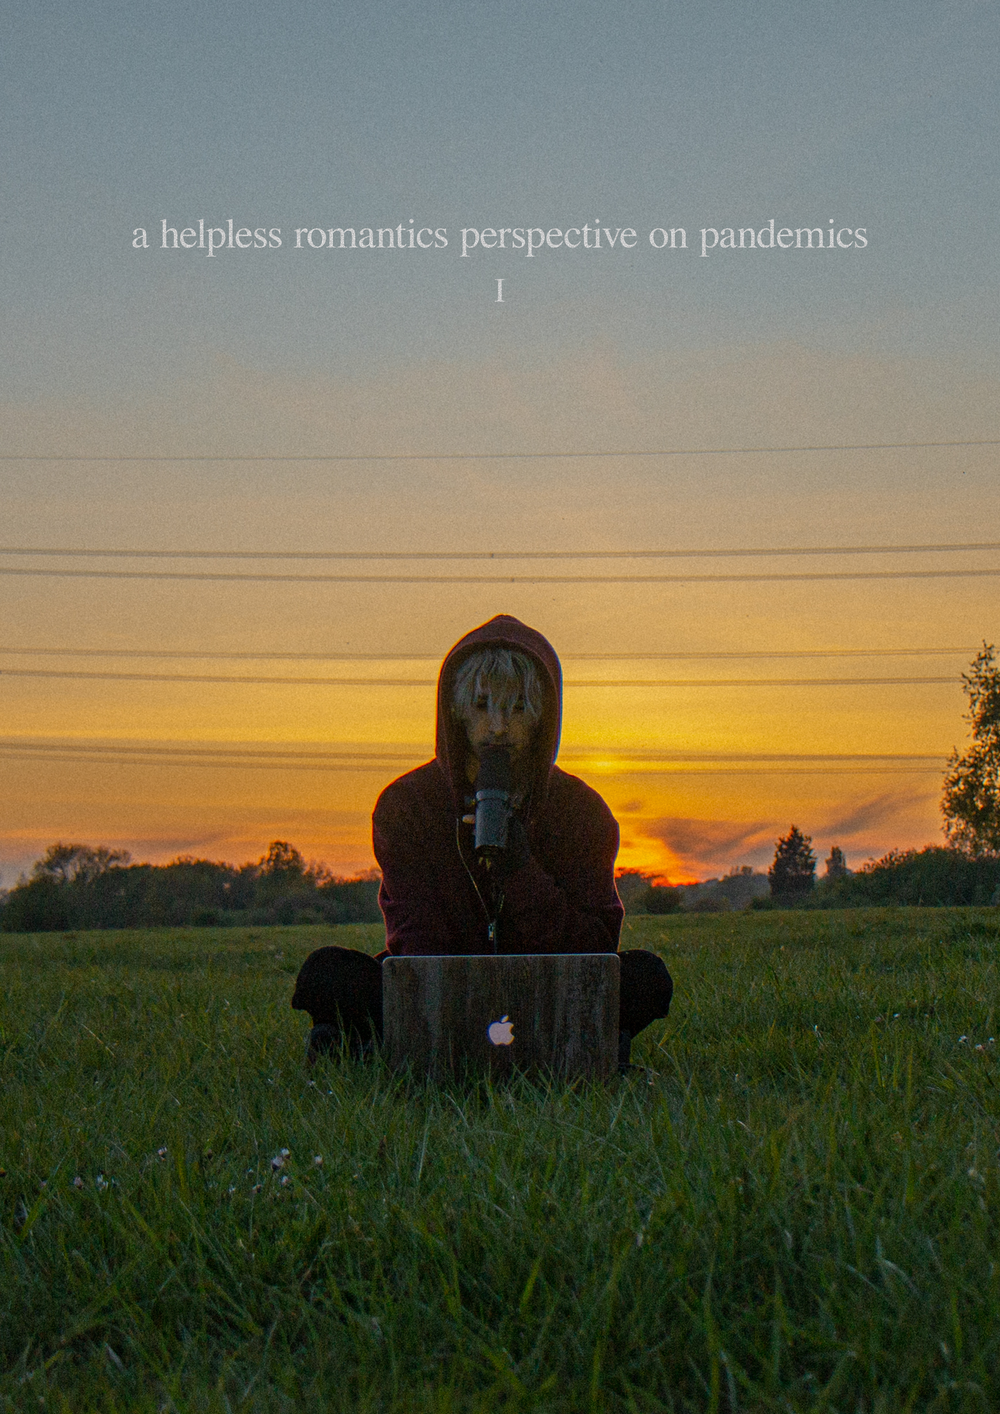 Image of a helpless romantics perspective on pandemics A3 poster